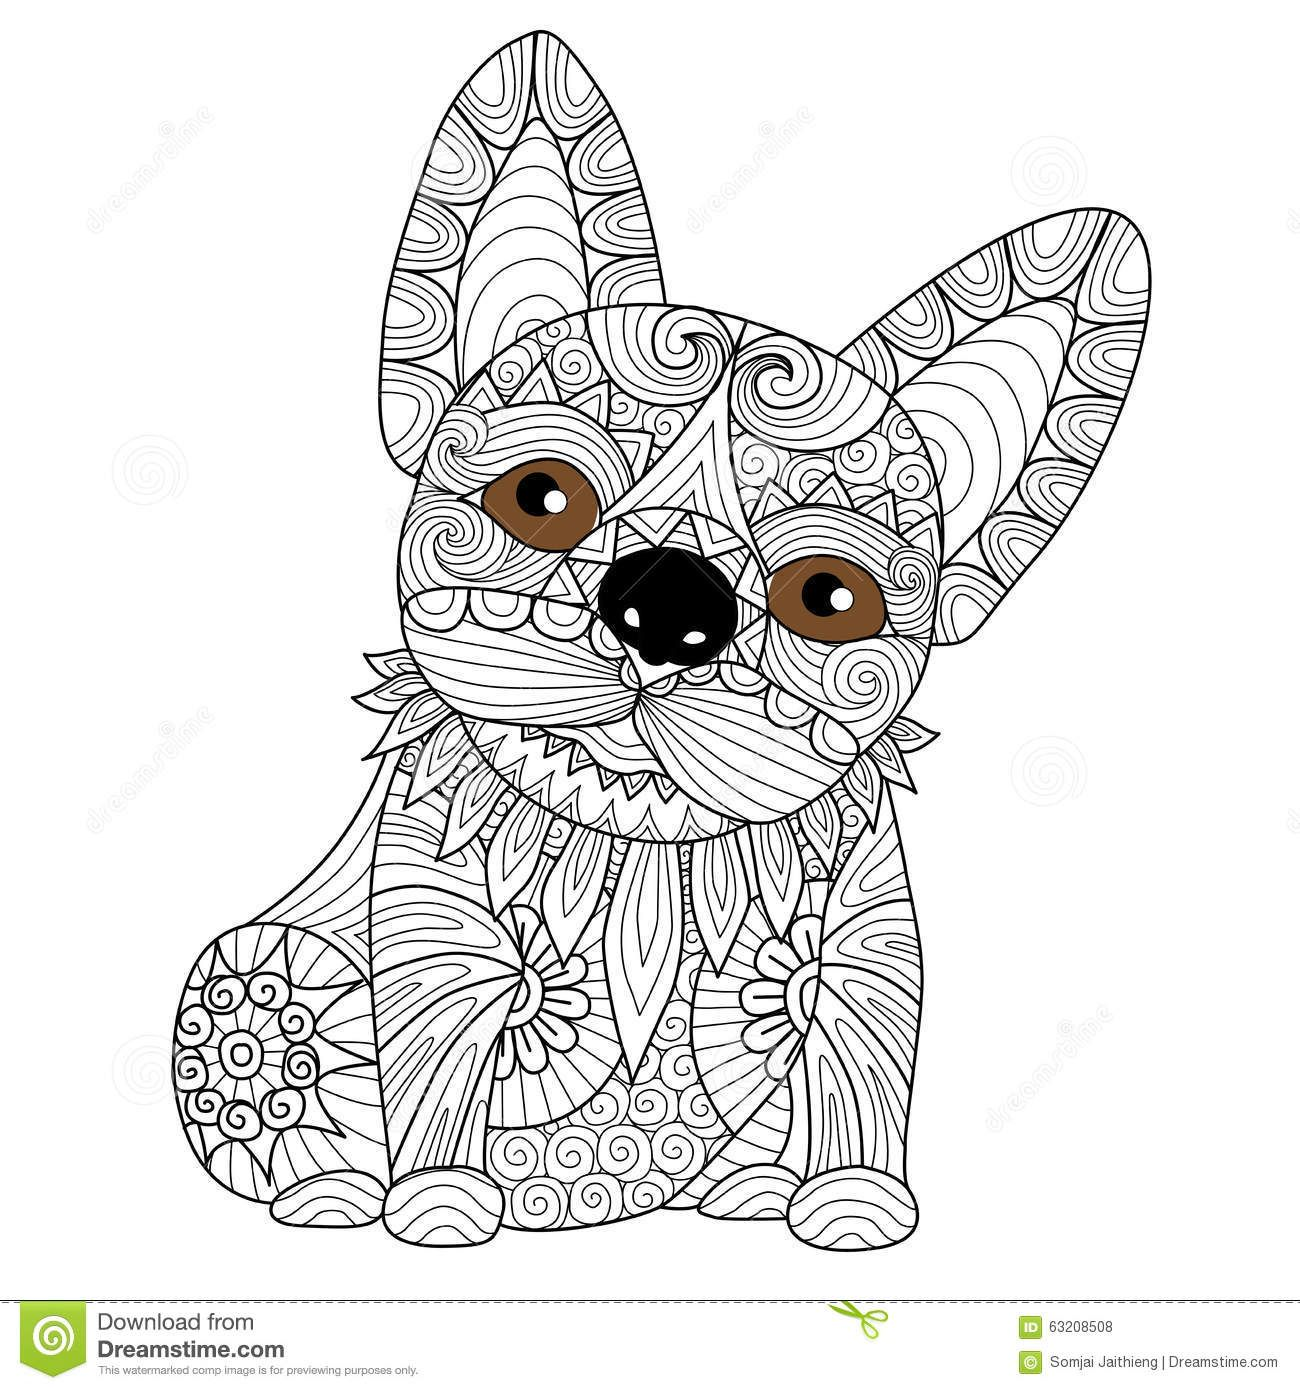 Image Result For Dog Colouring Pages For Adults Dog Coloring Book Puppy Coloring Pages Dog Coloring Page [ 1390 x 1300 Pixel ]